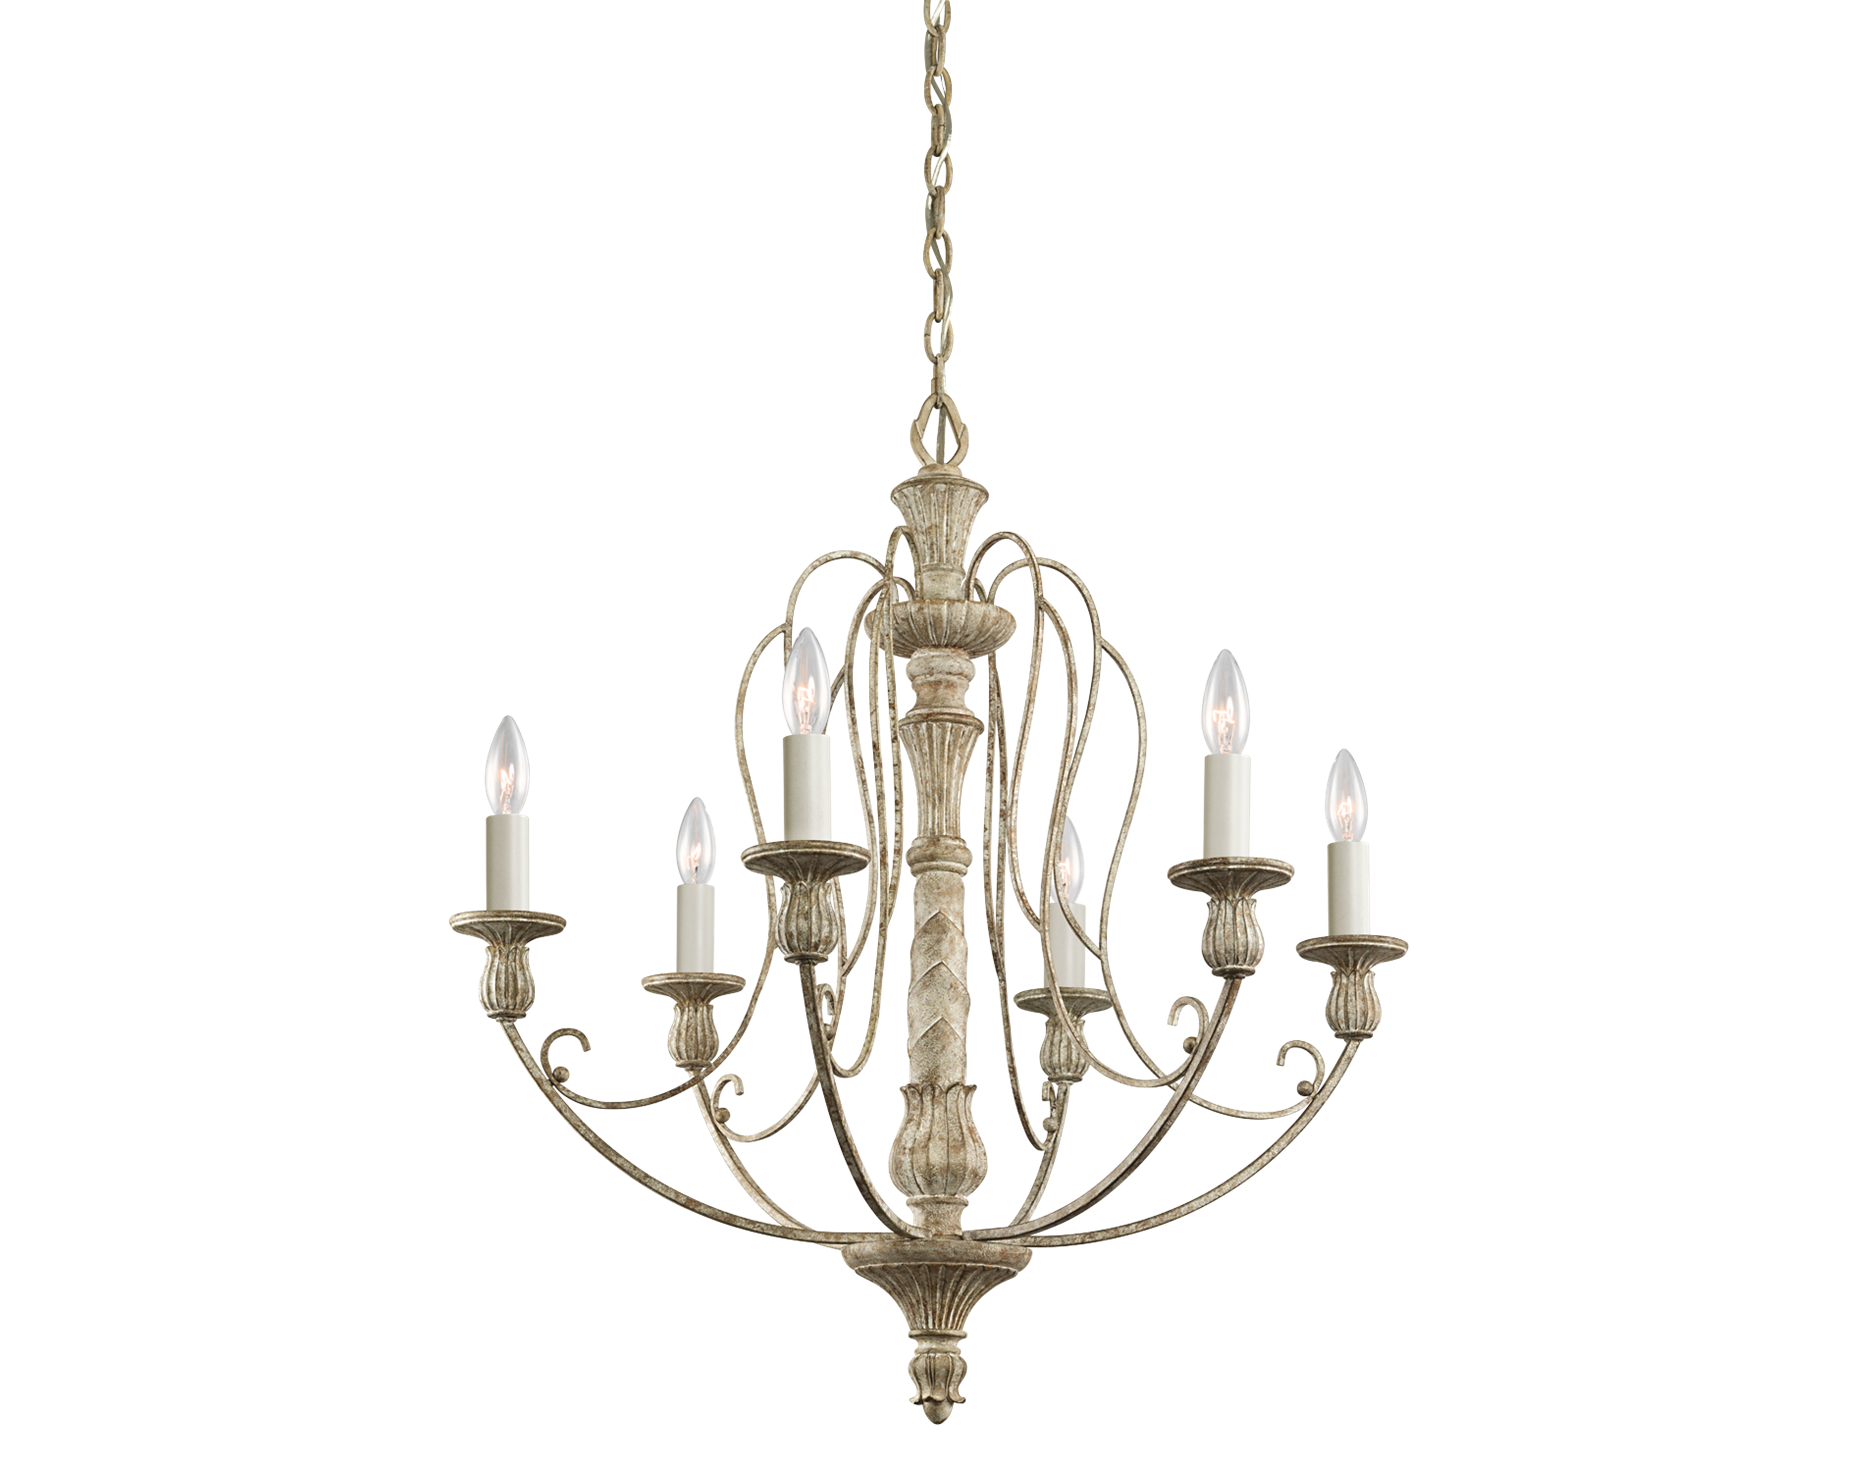 KICHLER Hayman Bay 6 Light Chandelier in Distressed Antique